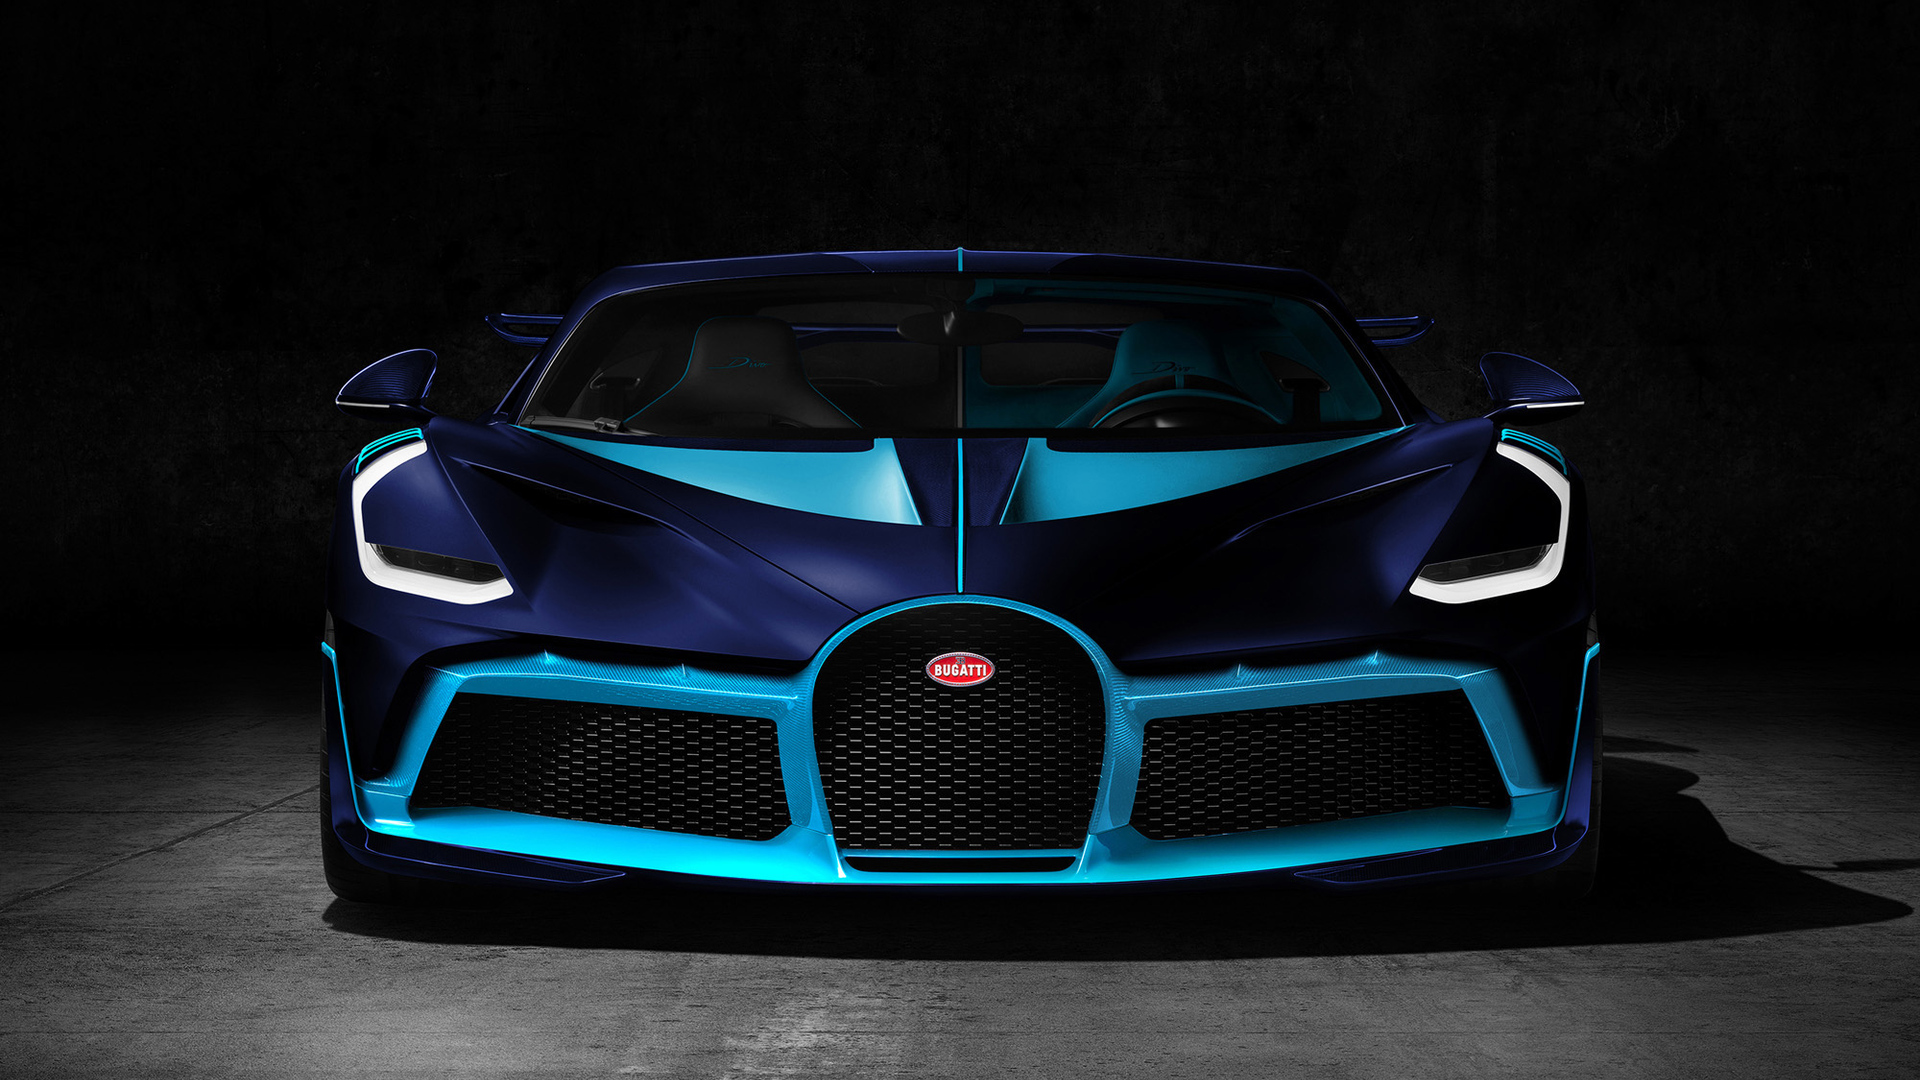 1920x1080 Light And Dark Blue Bugatti Divo Laptop Full Hd 1080p Hd 4k Wallpapers Images Backgrounds Photos And Pictures